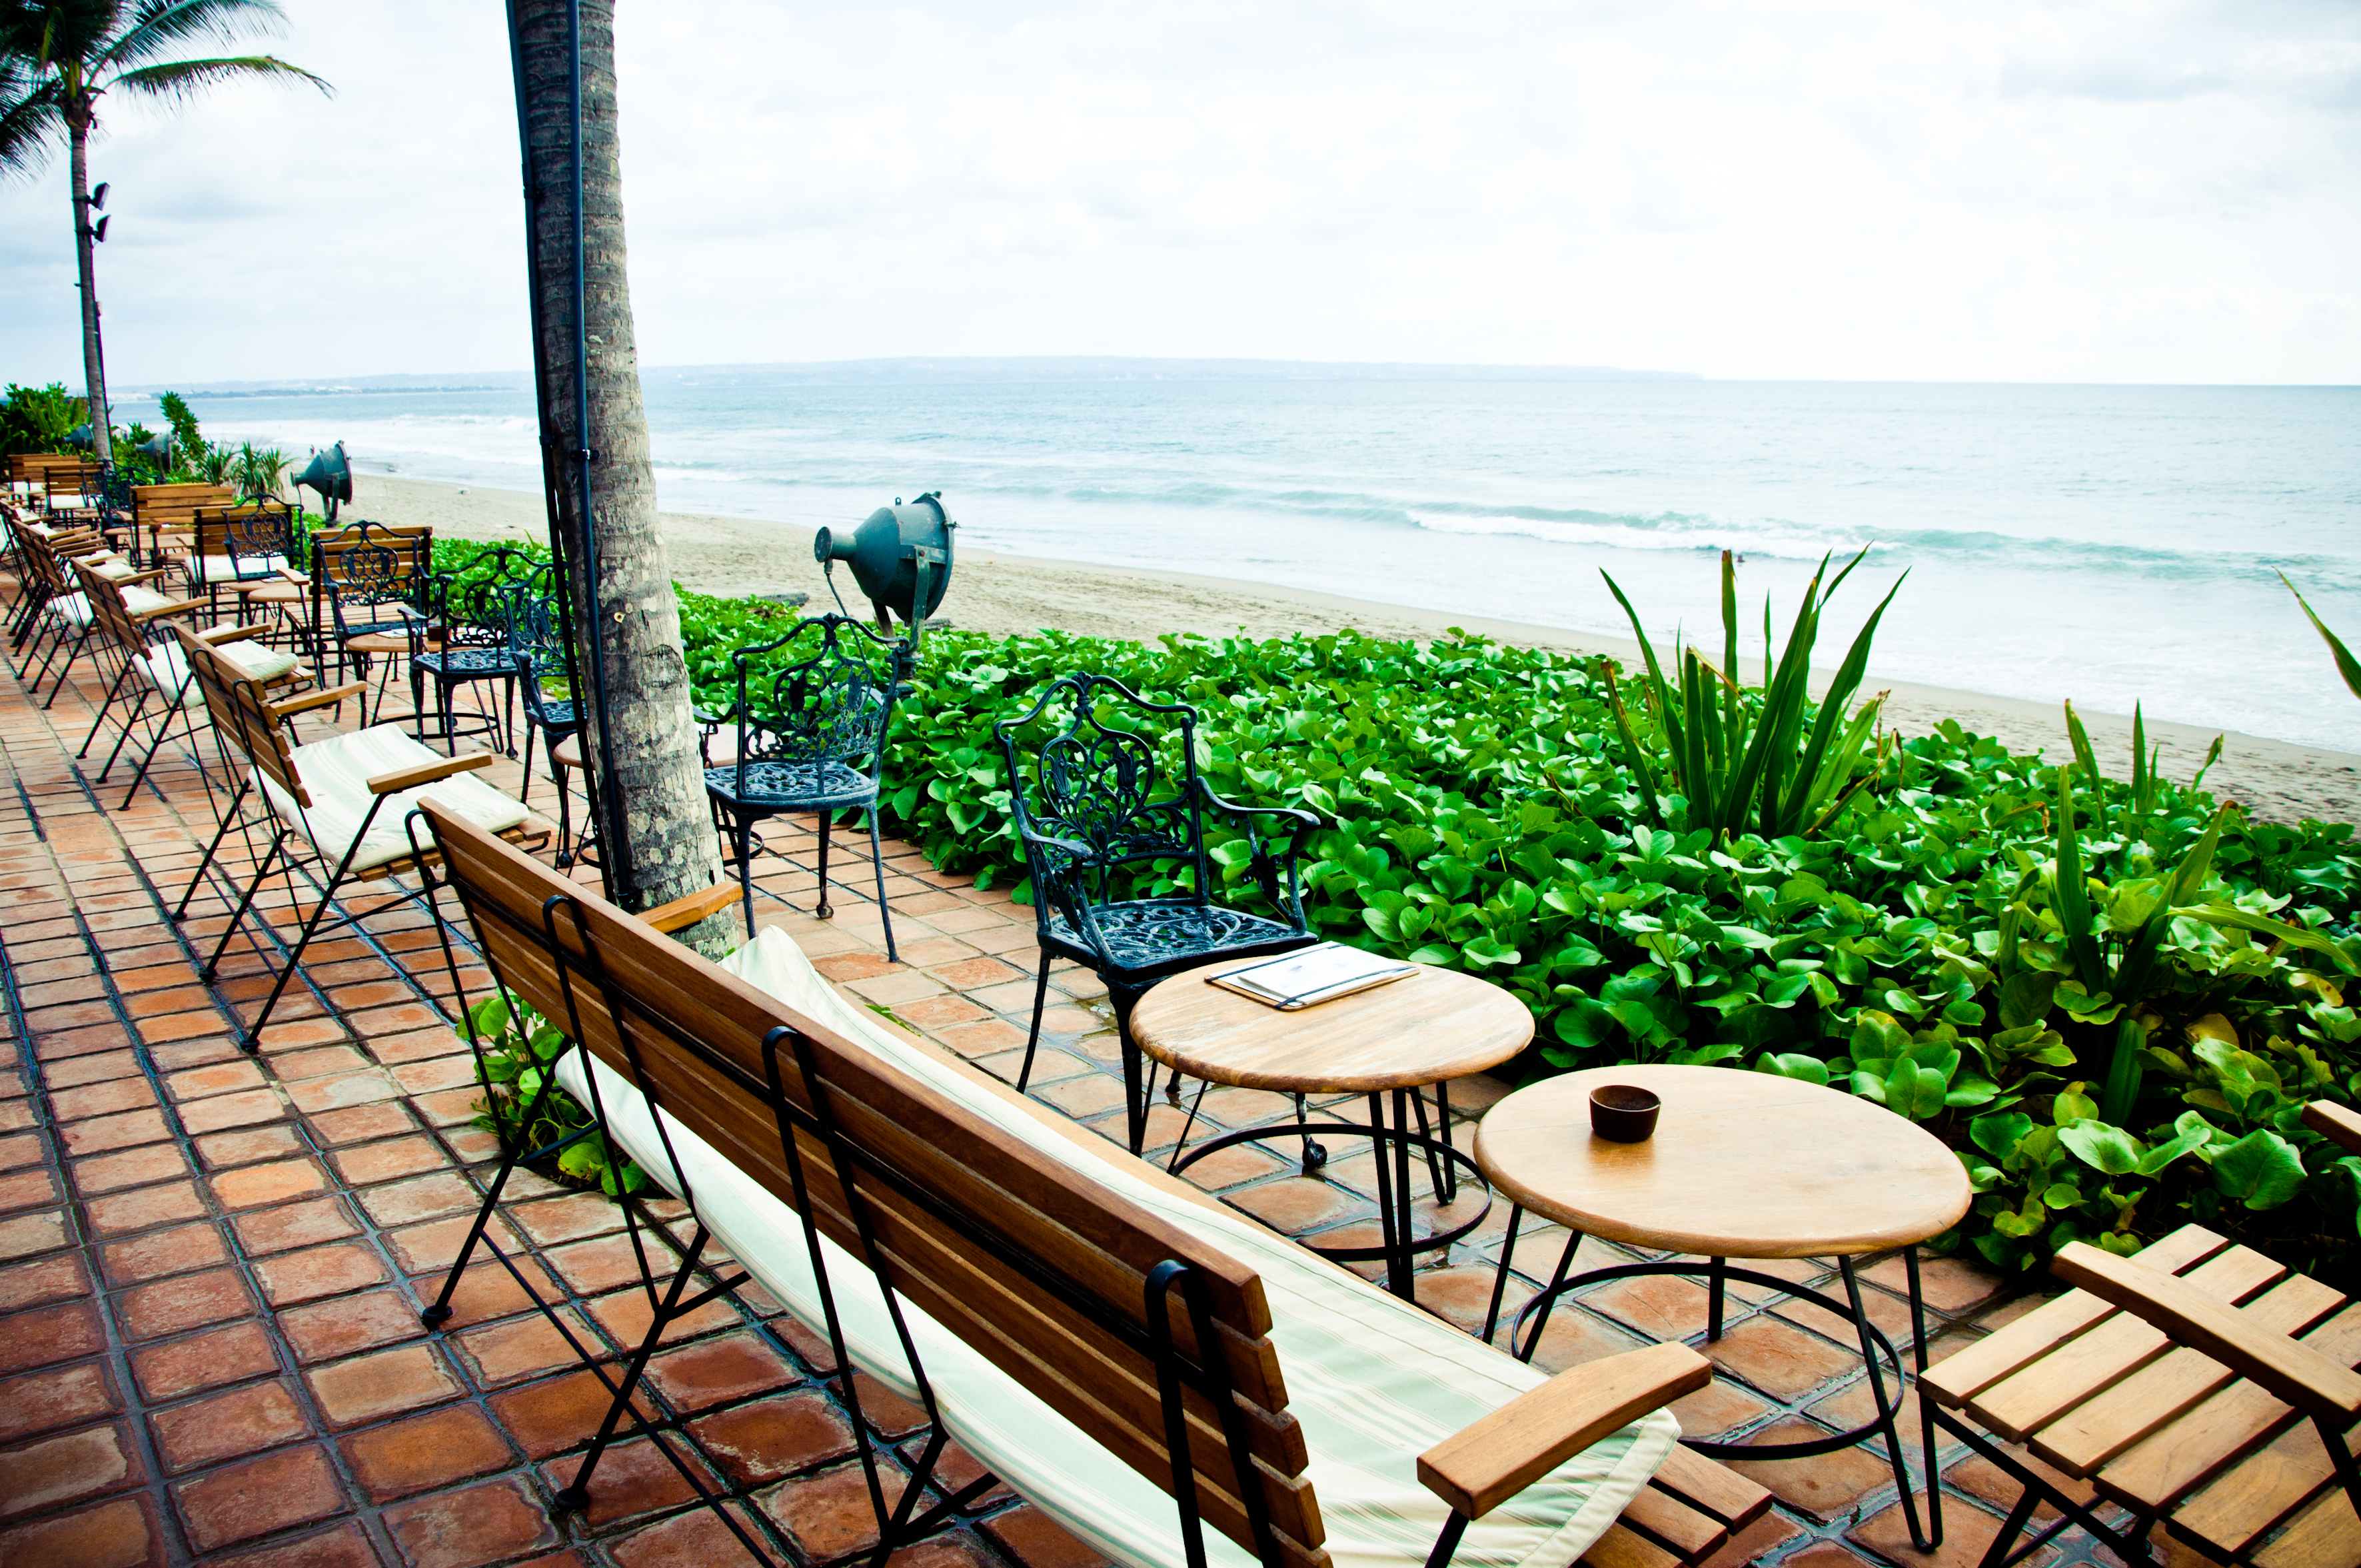 Cafe by the beach photo